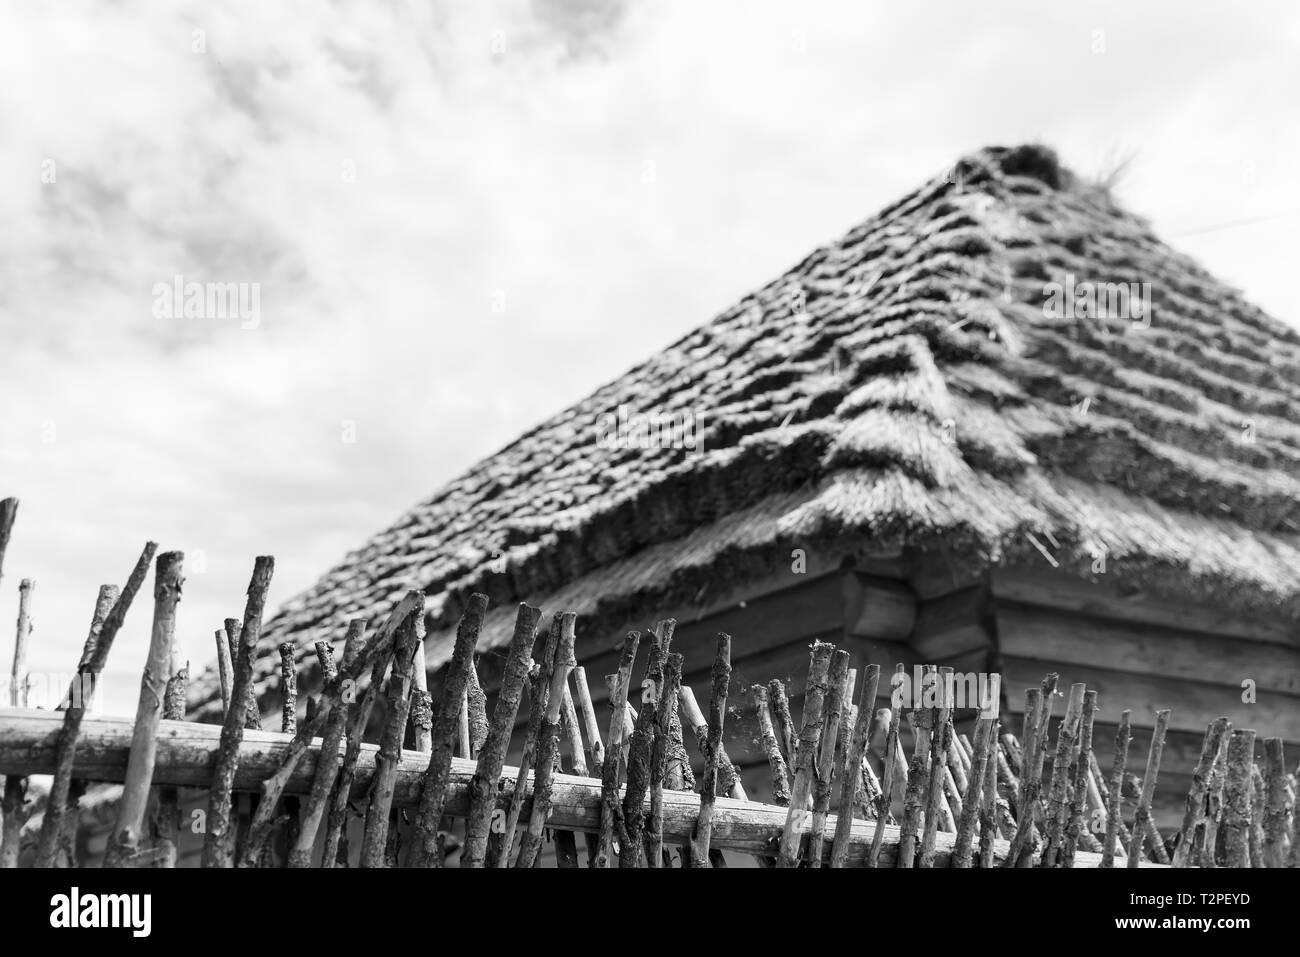 Old wooden hut with a straw roof, traditional Ukrainian hut of the end of 19th and early 20th century, monochrome effect Stock Photo